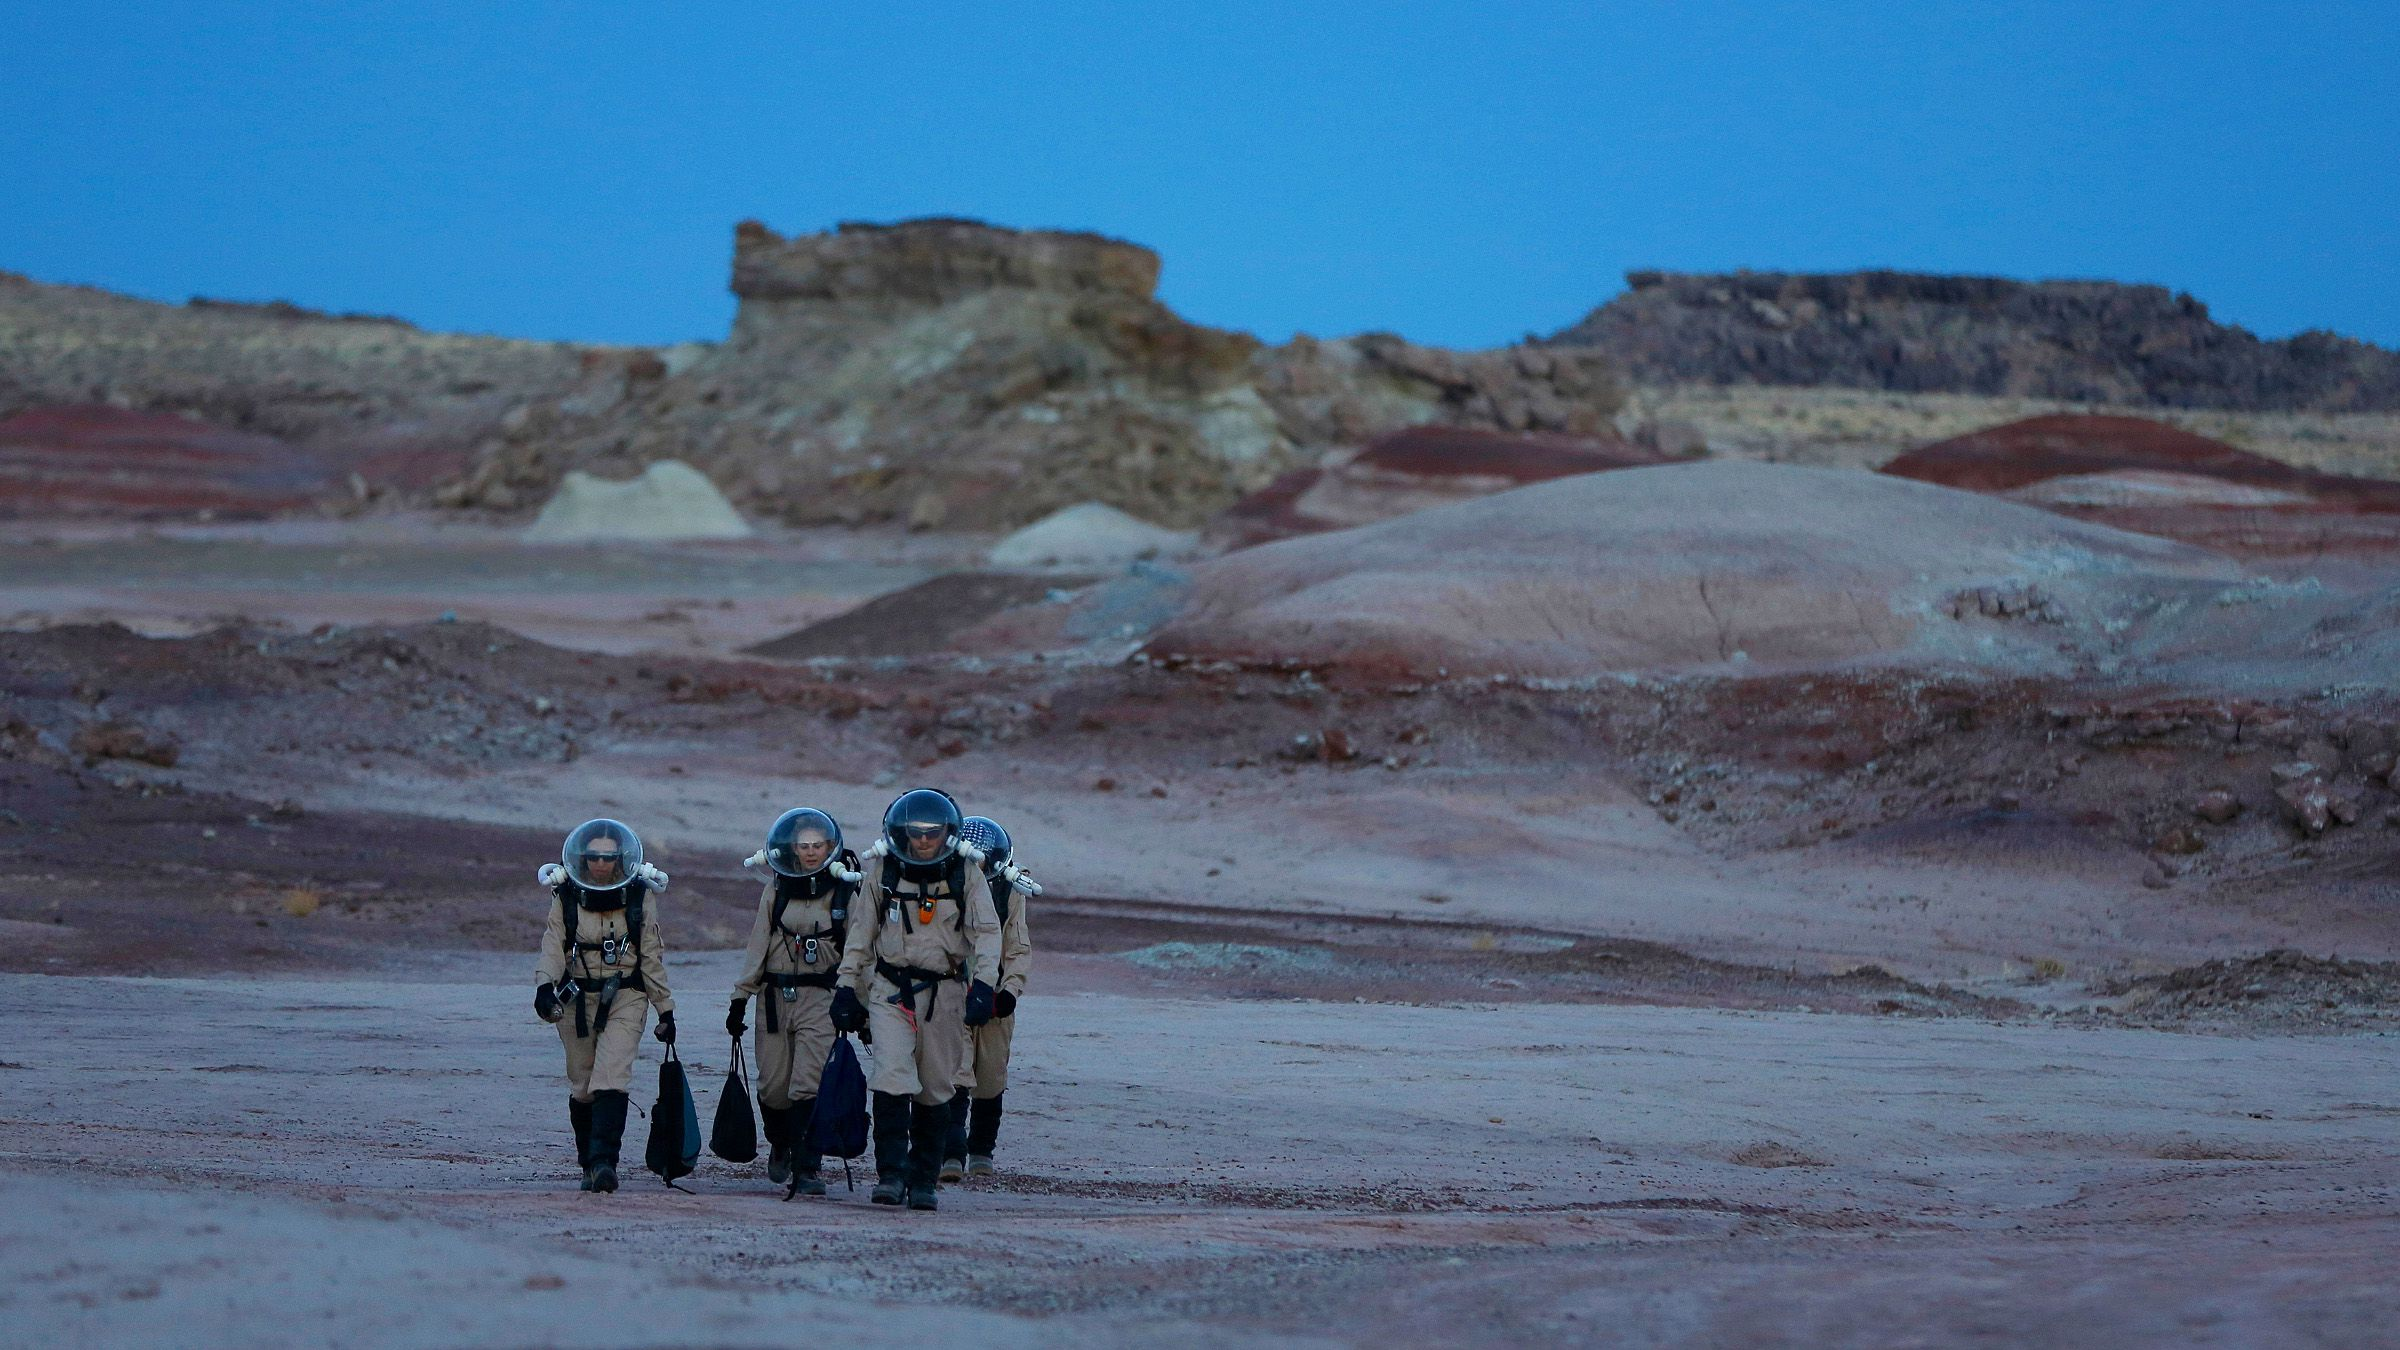 Members of Crew 125 EuroMoonMars B mission return after collecting geologic samples for study at the Mars Desert Research Station (MDRS) in the Utah desert March 2, 2013. The MDRS aims to investigate the feasibility of a human exploration of Mars and uses the Utah desert's Mars-like terrain to simulate working conditions on the red planet. Scientists, students and enthusiasts work together developing field tactics and studying the terrain. All outdoor exploration is done wearing simulated spacesuits and carrying air supply packs and crews live together in a small communication base with limited amounts of electricity, food, oxygen and water. Everything needed to survive must be produced, fixed and replaced on site. Picture taken March 2, 2013.